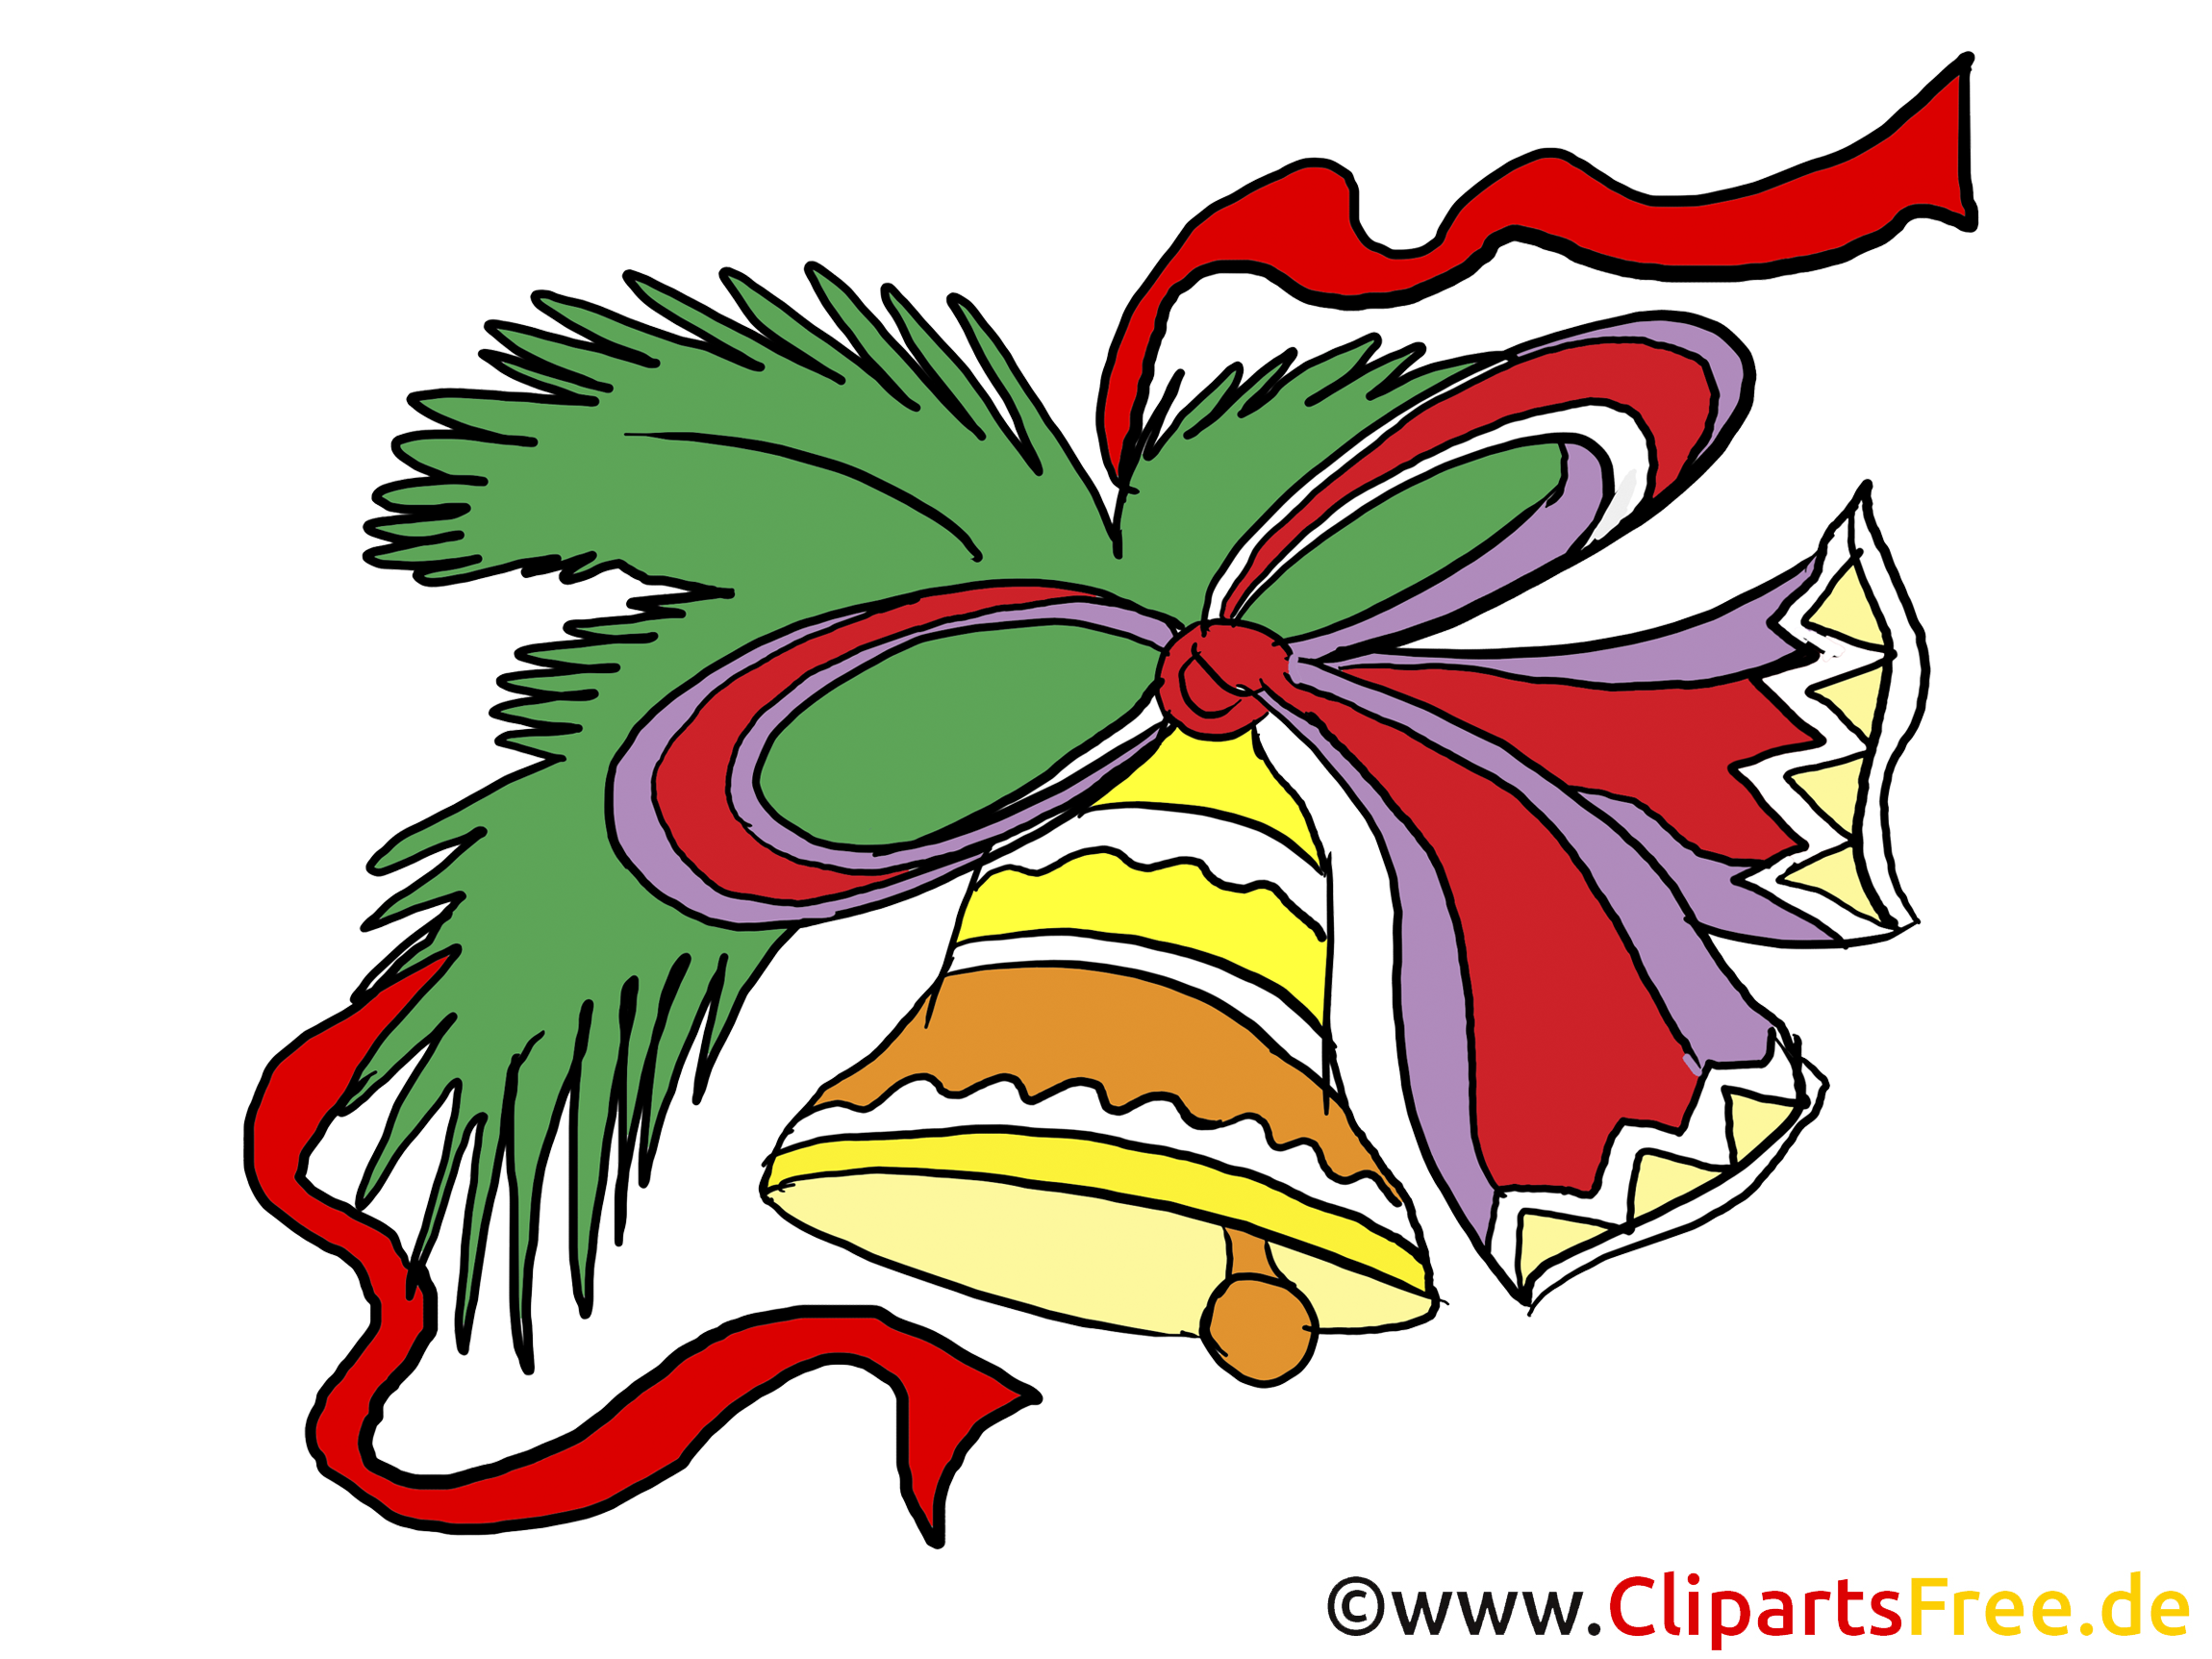 Cliparts Weihnachten Advent